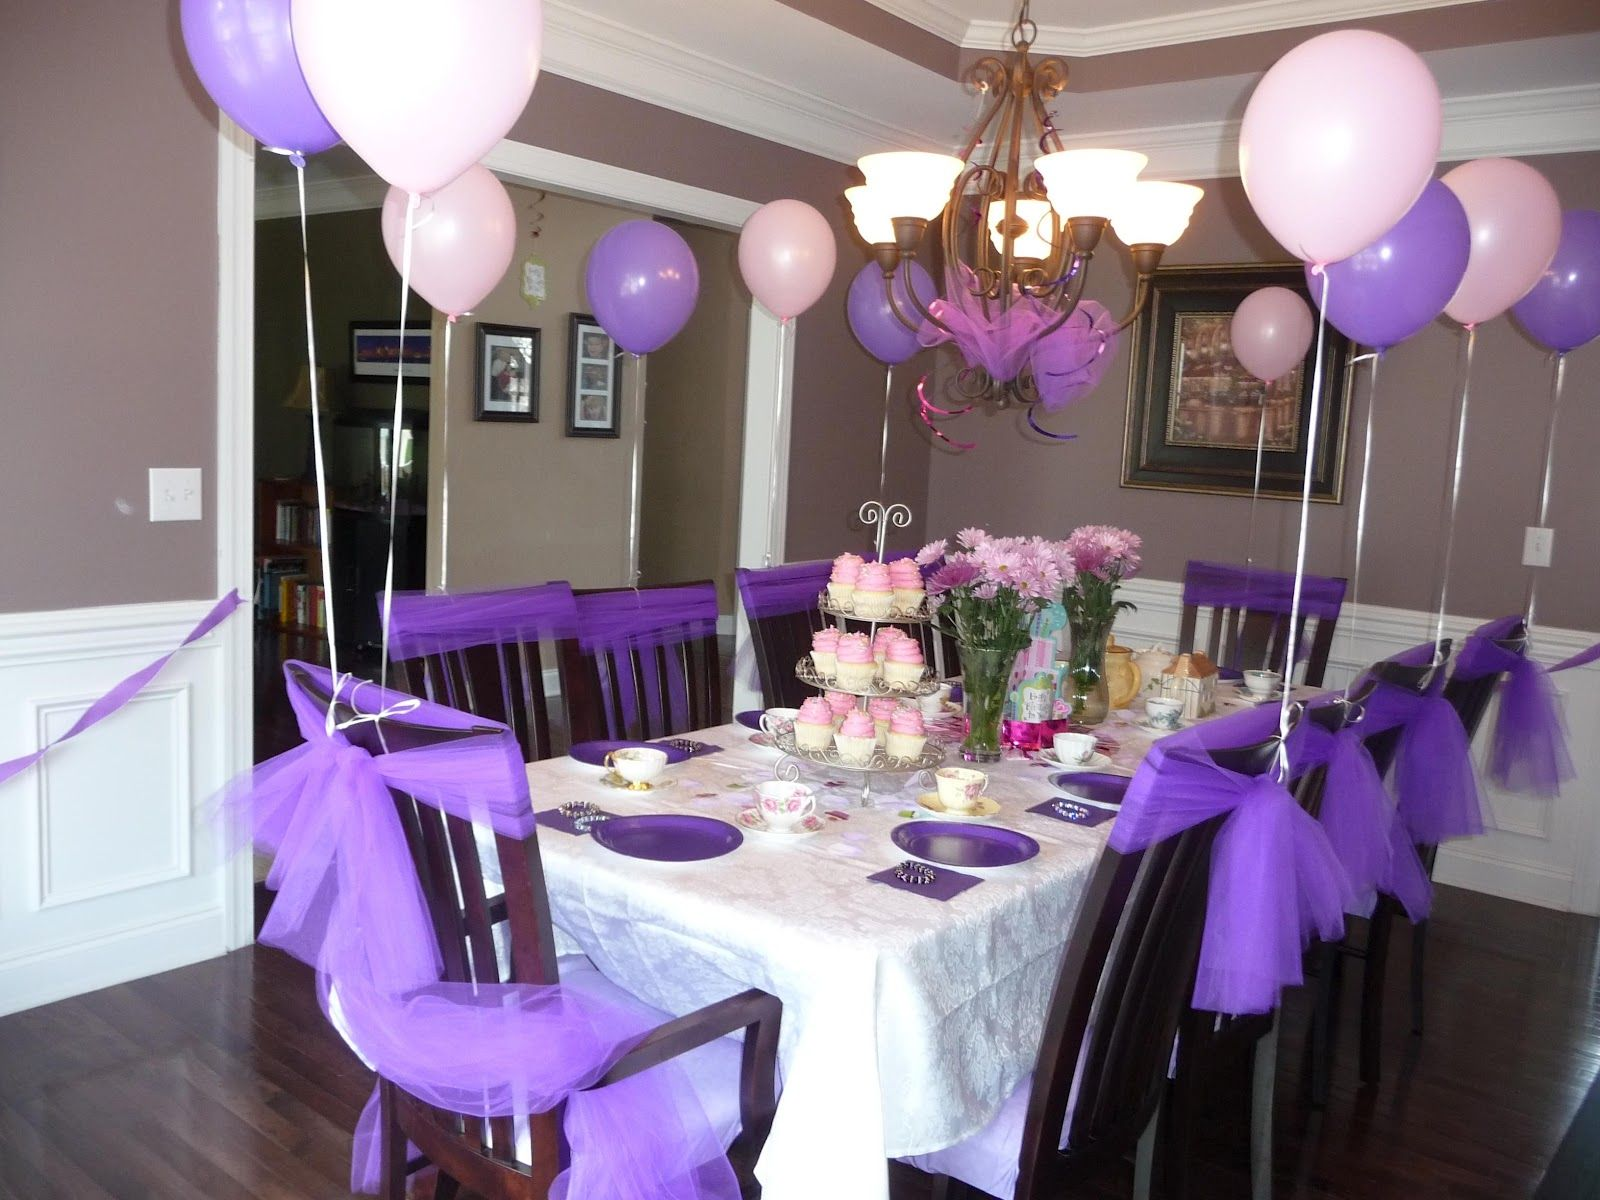 Table decoration for party - Lavender Table Decorations Trianglemommies Throwing A Princess Tea Party